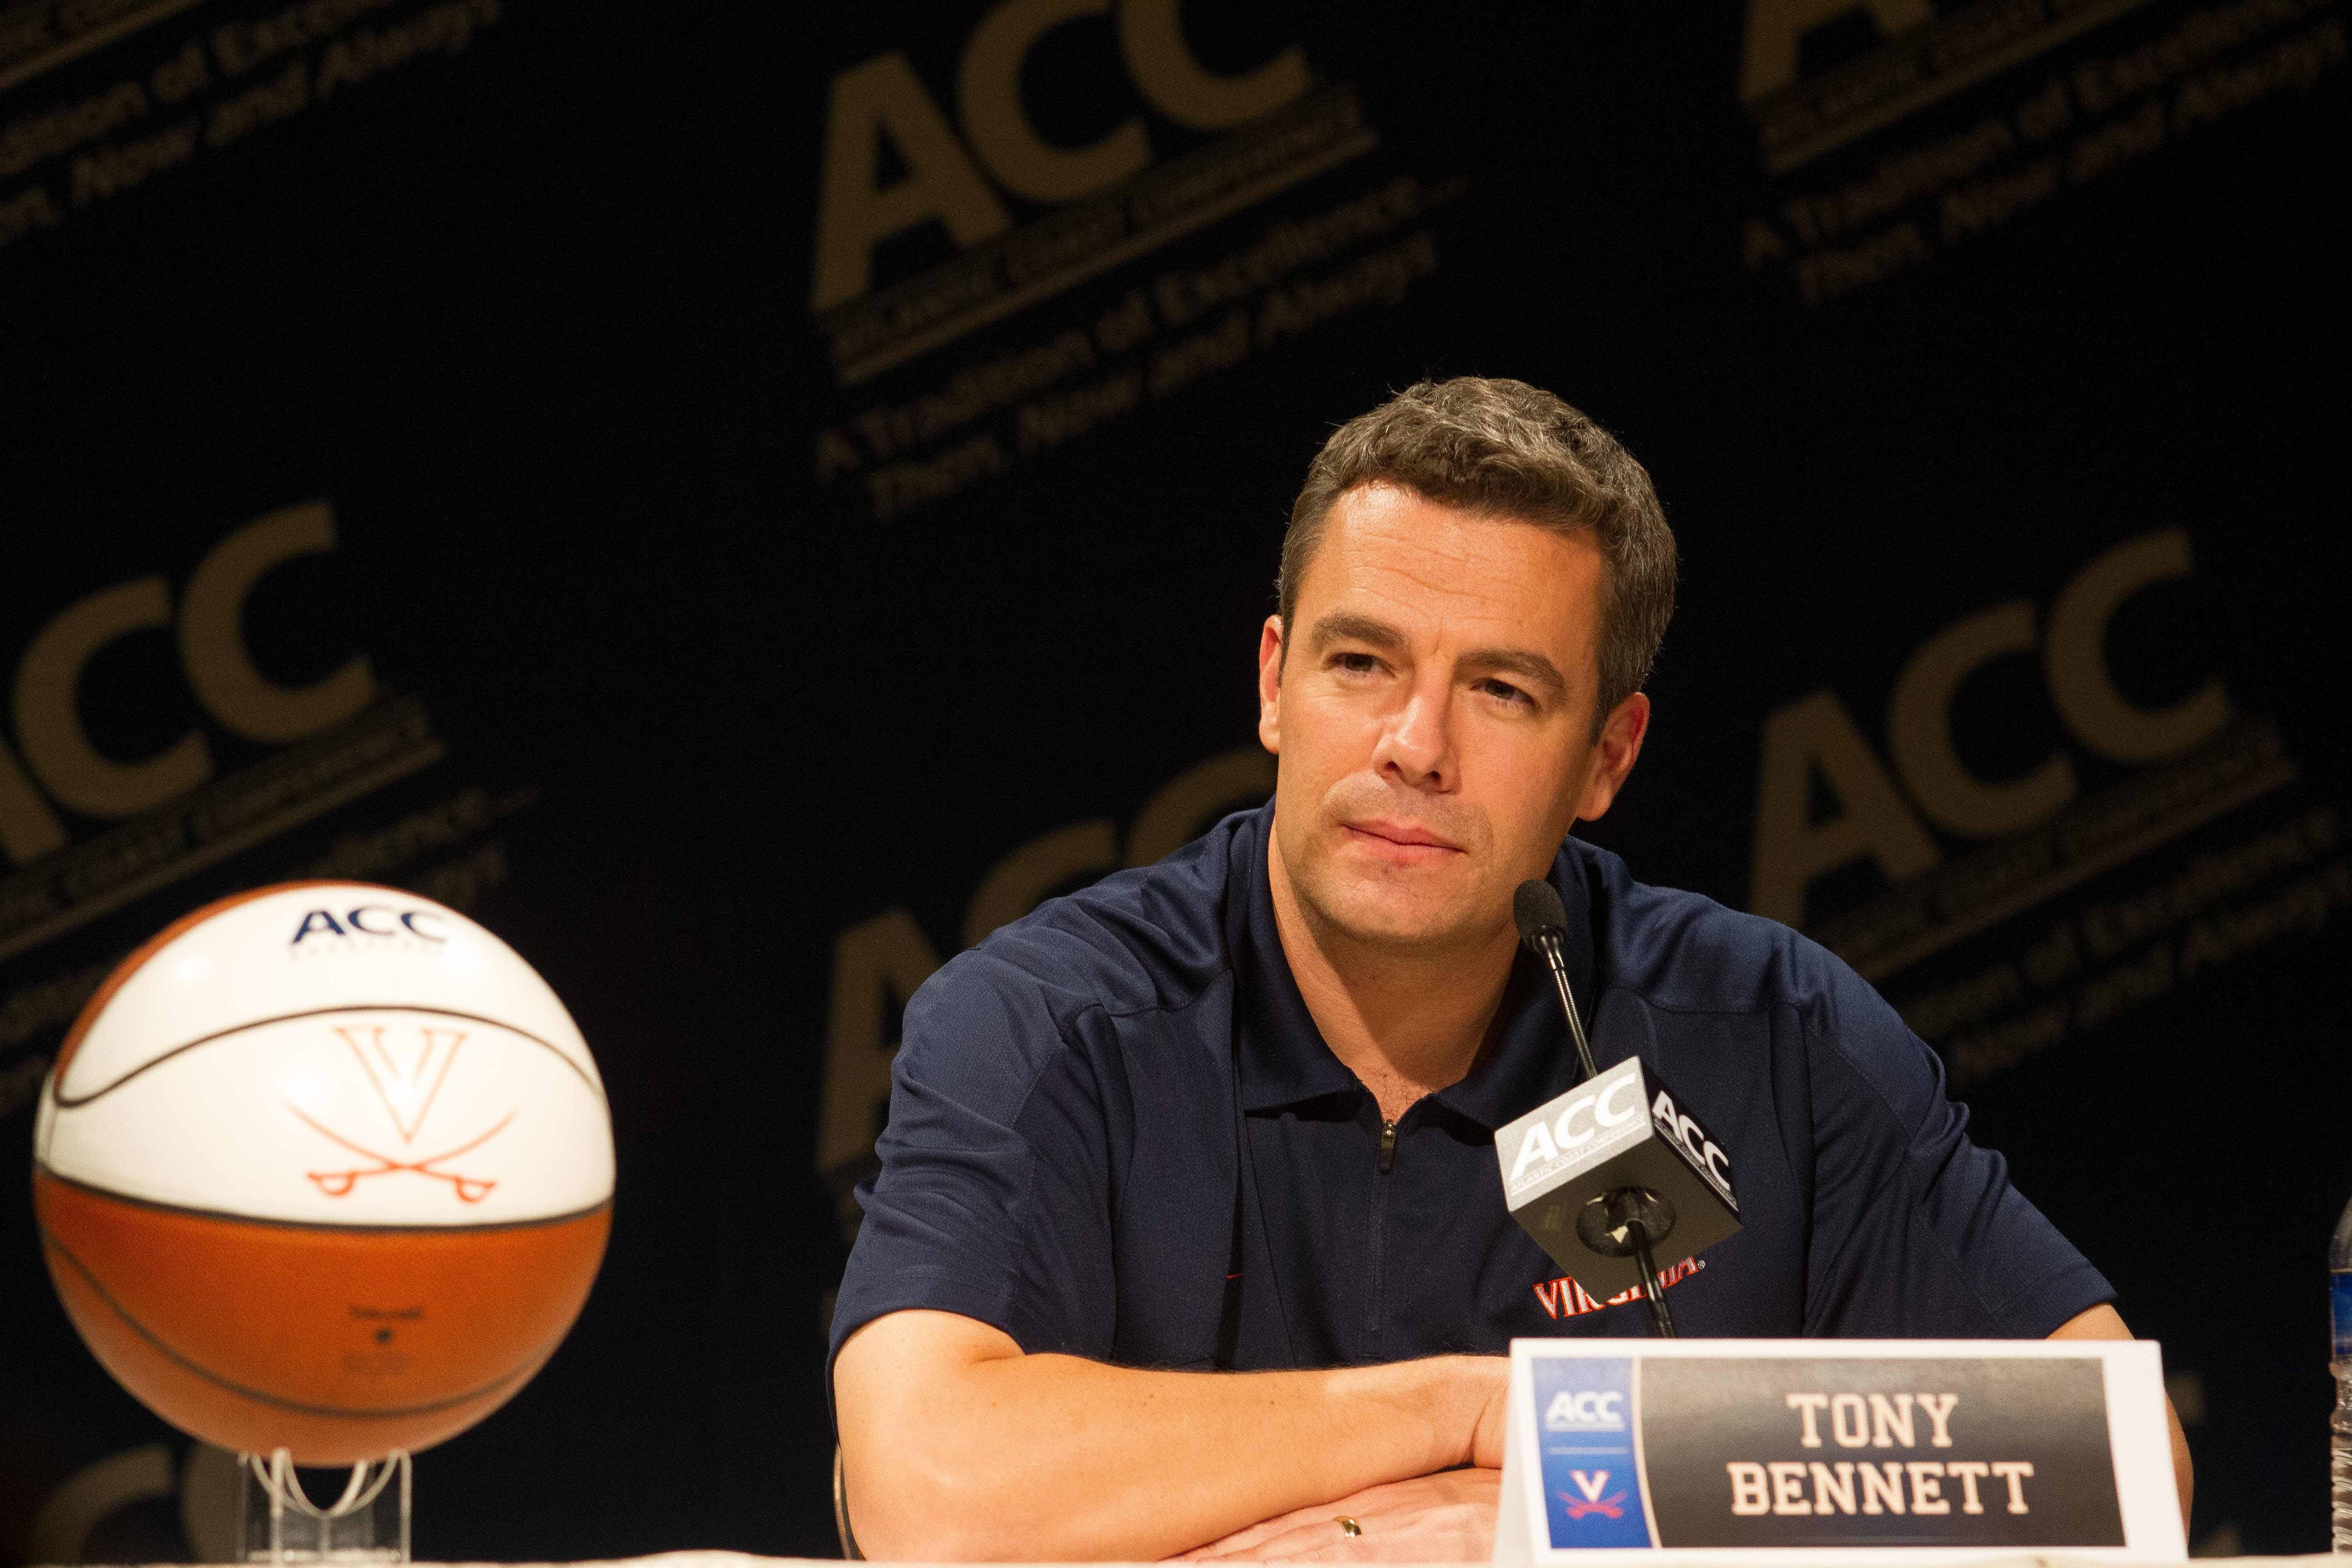 Tony Bennett returns to his homeland for the first time as the Virginia head coach.